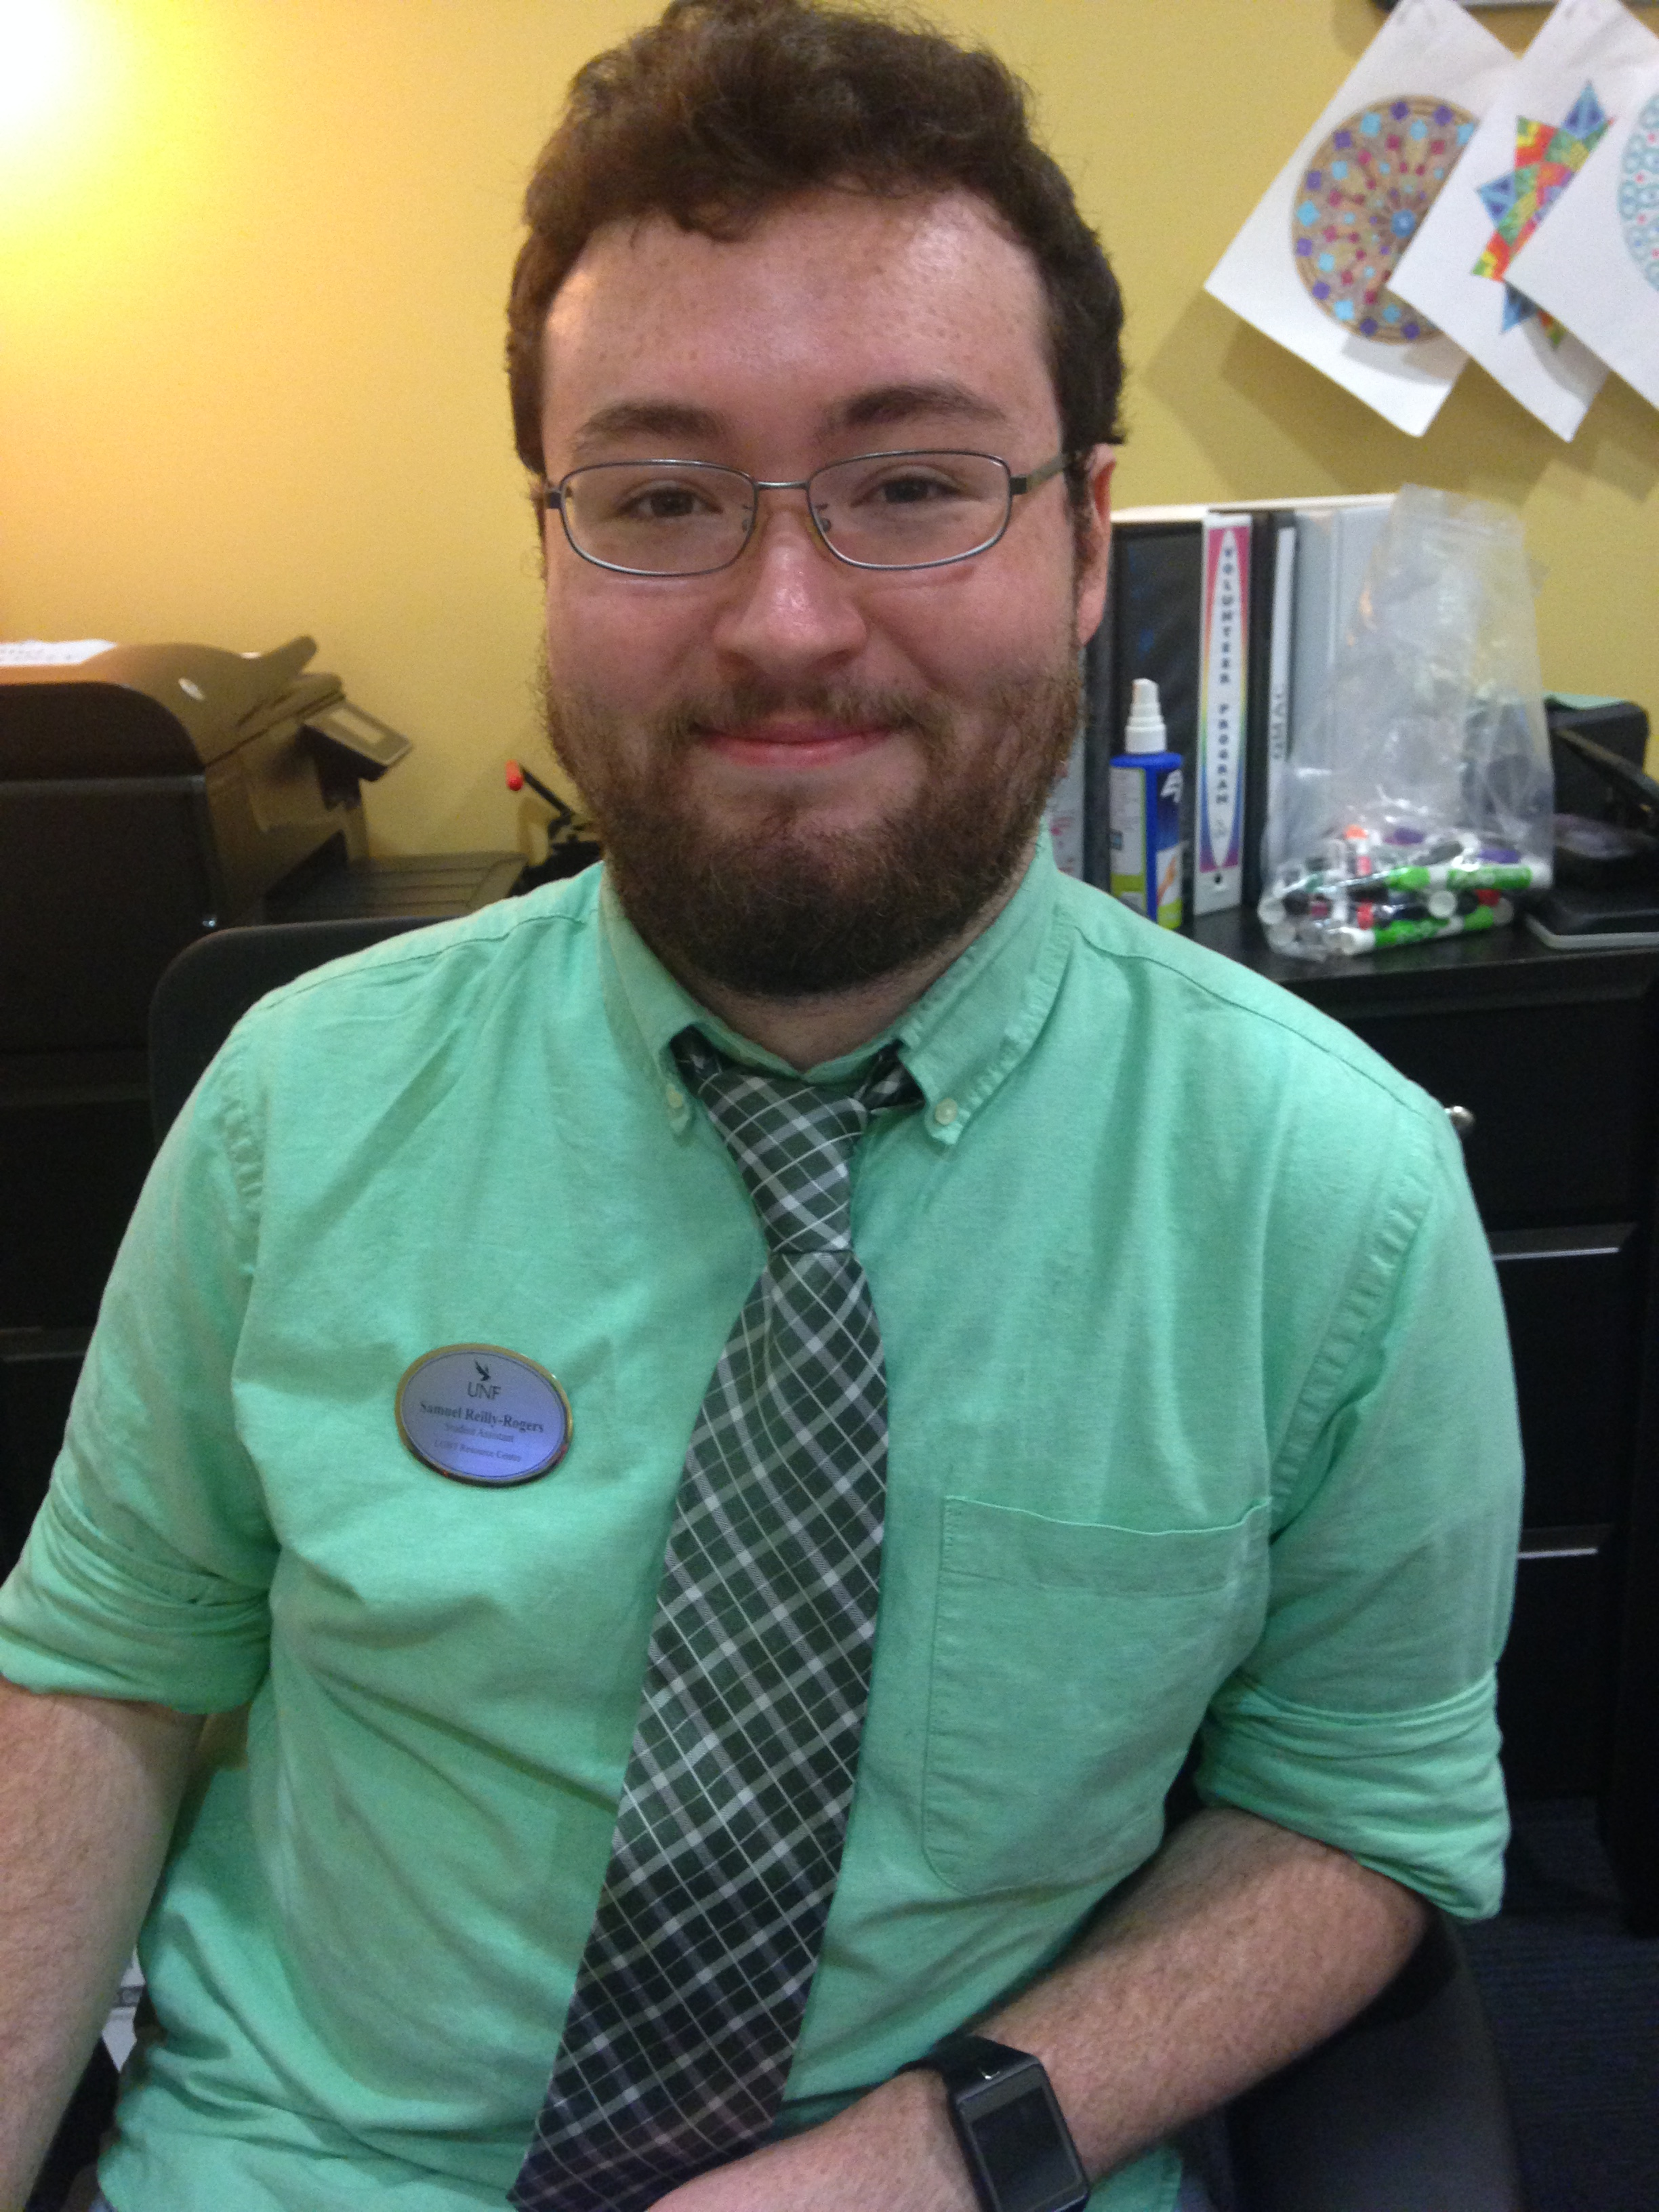 Samuel Reilly-Rogers in a green shirt and checker-pattern tie, with glasses.